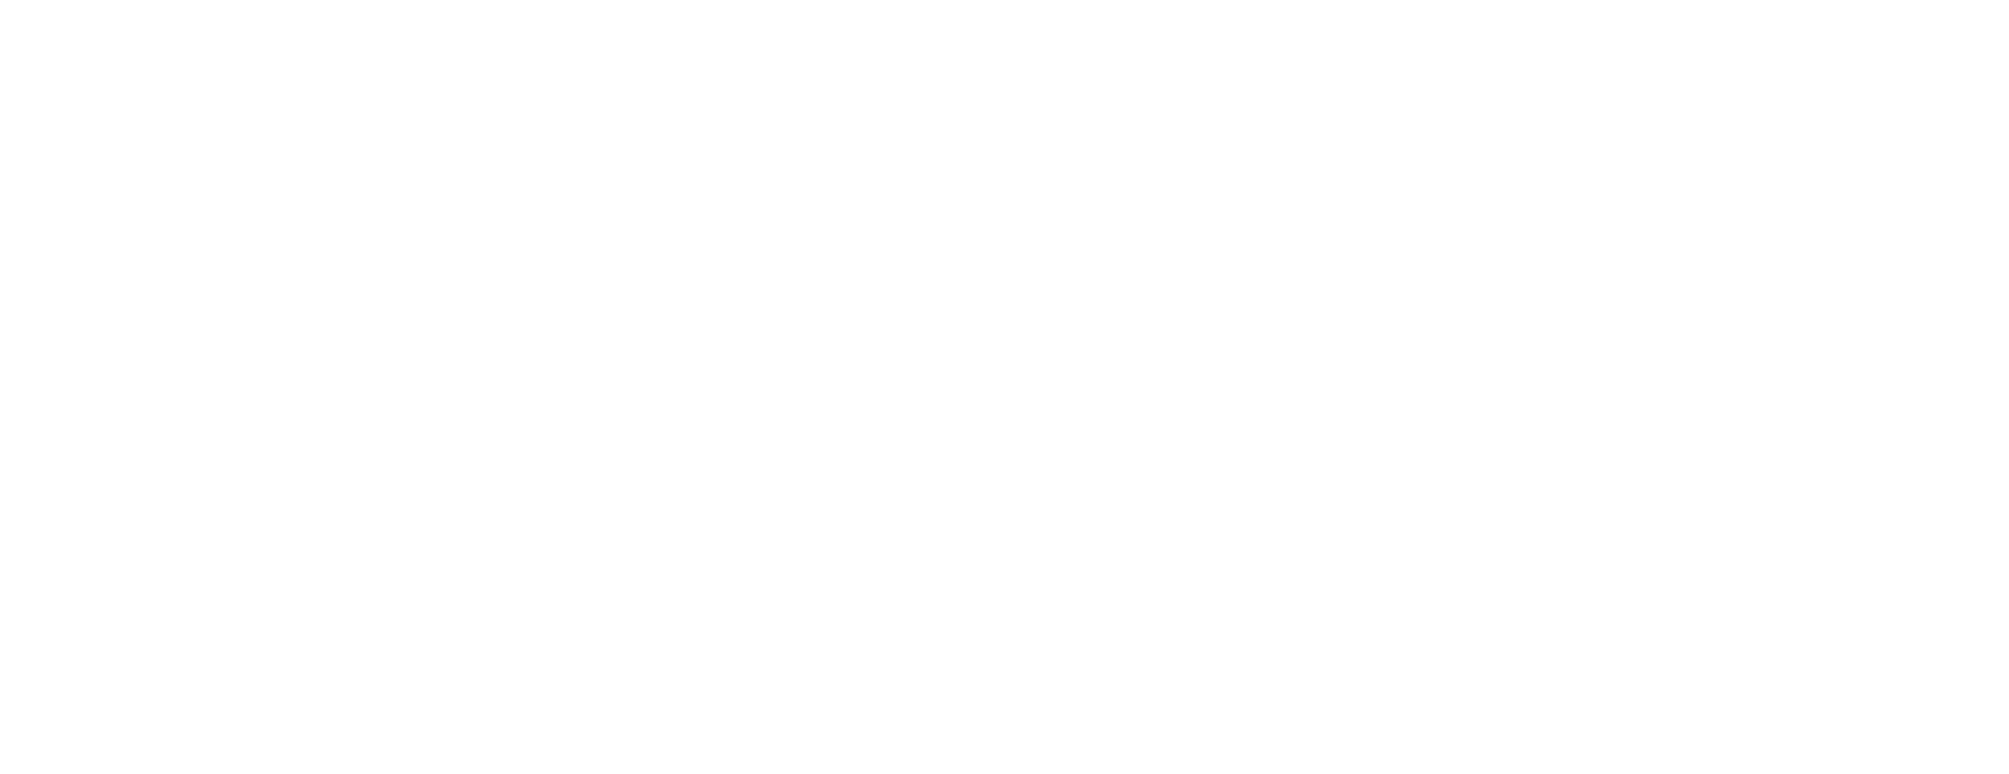 picture_DowntonBrewery